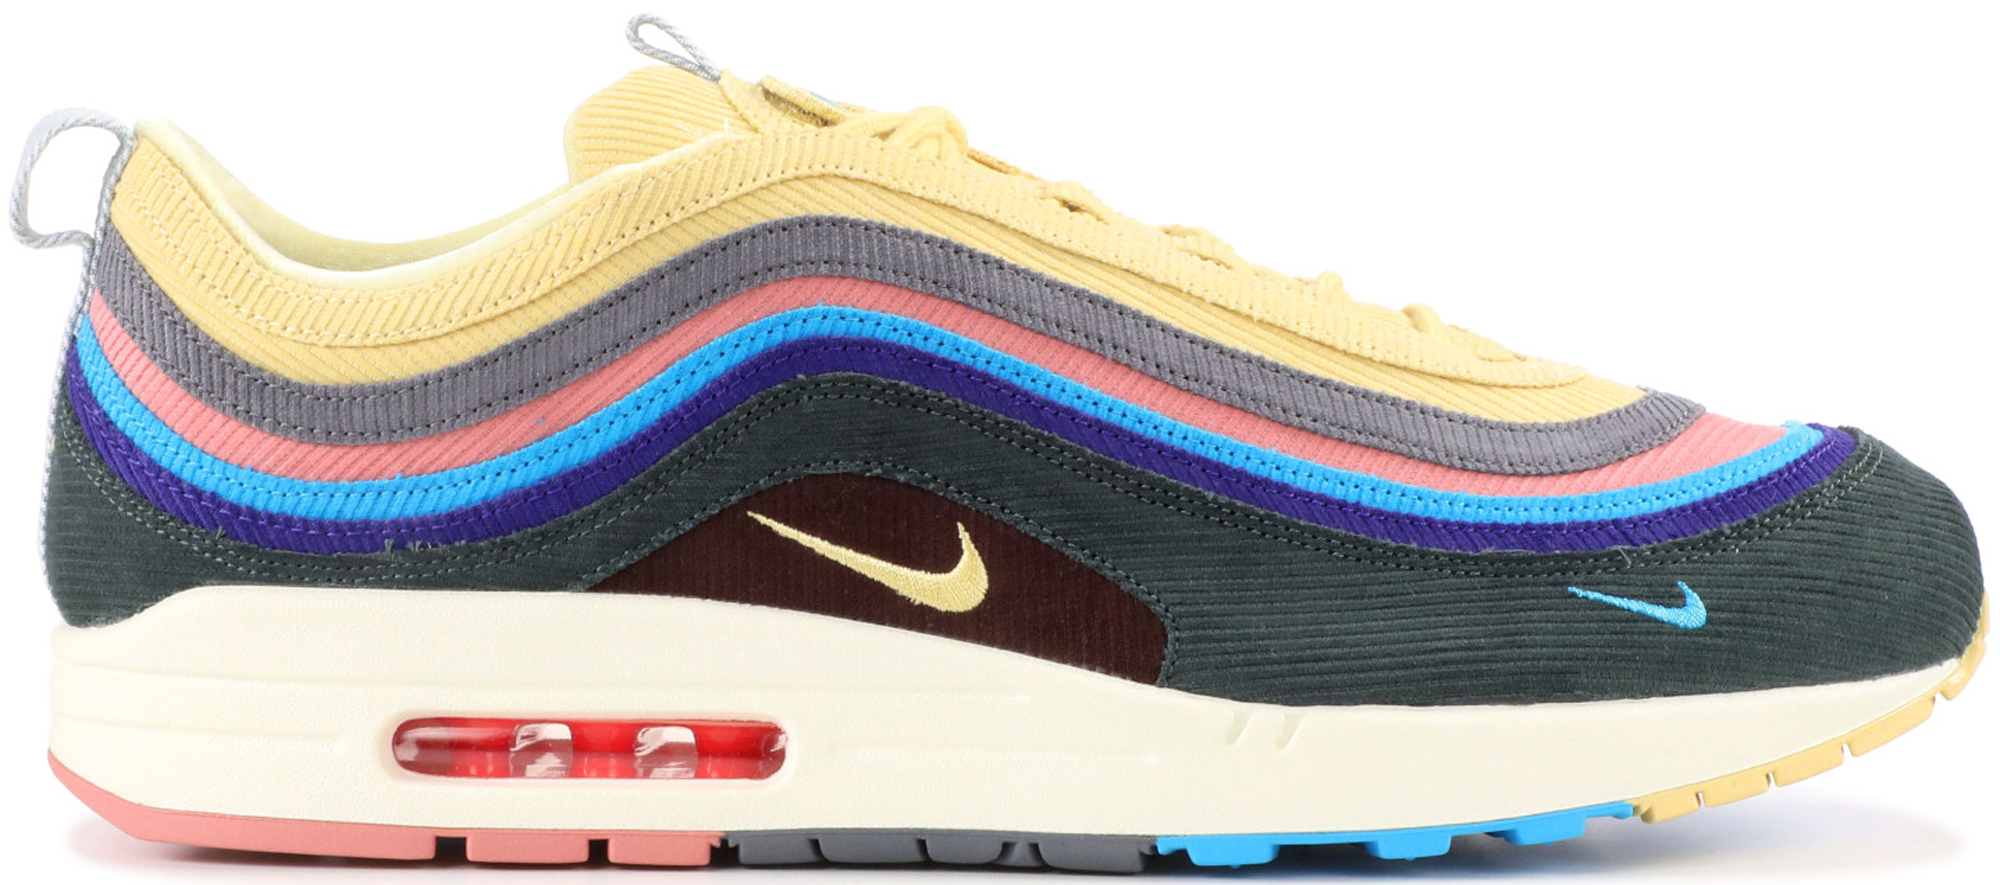 Air Max 97 1 1 Nike Air Max 1 97 97 By Sean Wotherspoon Model Aviation 6fd9f9